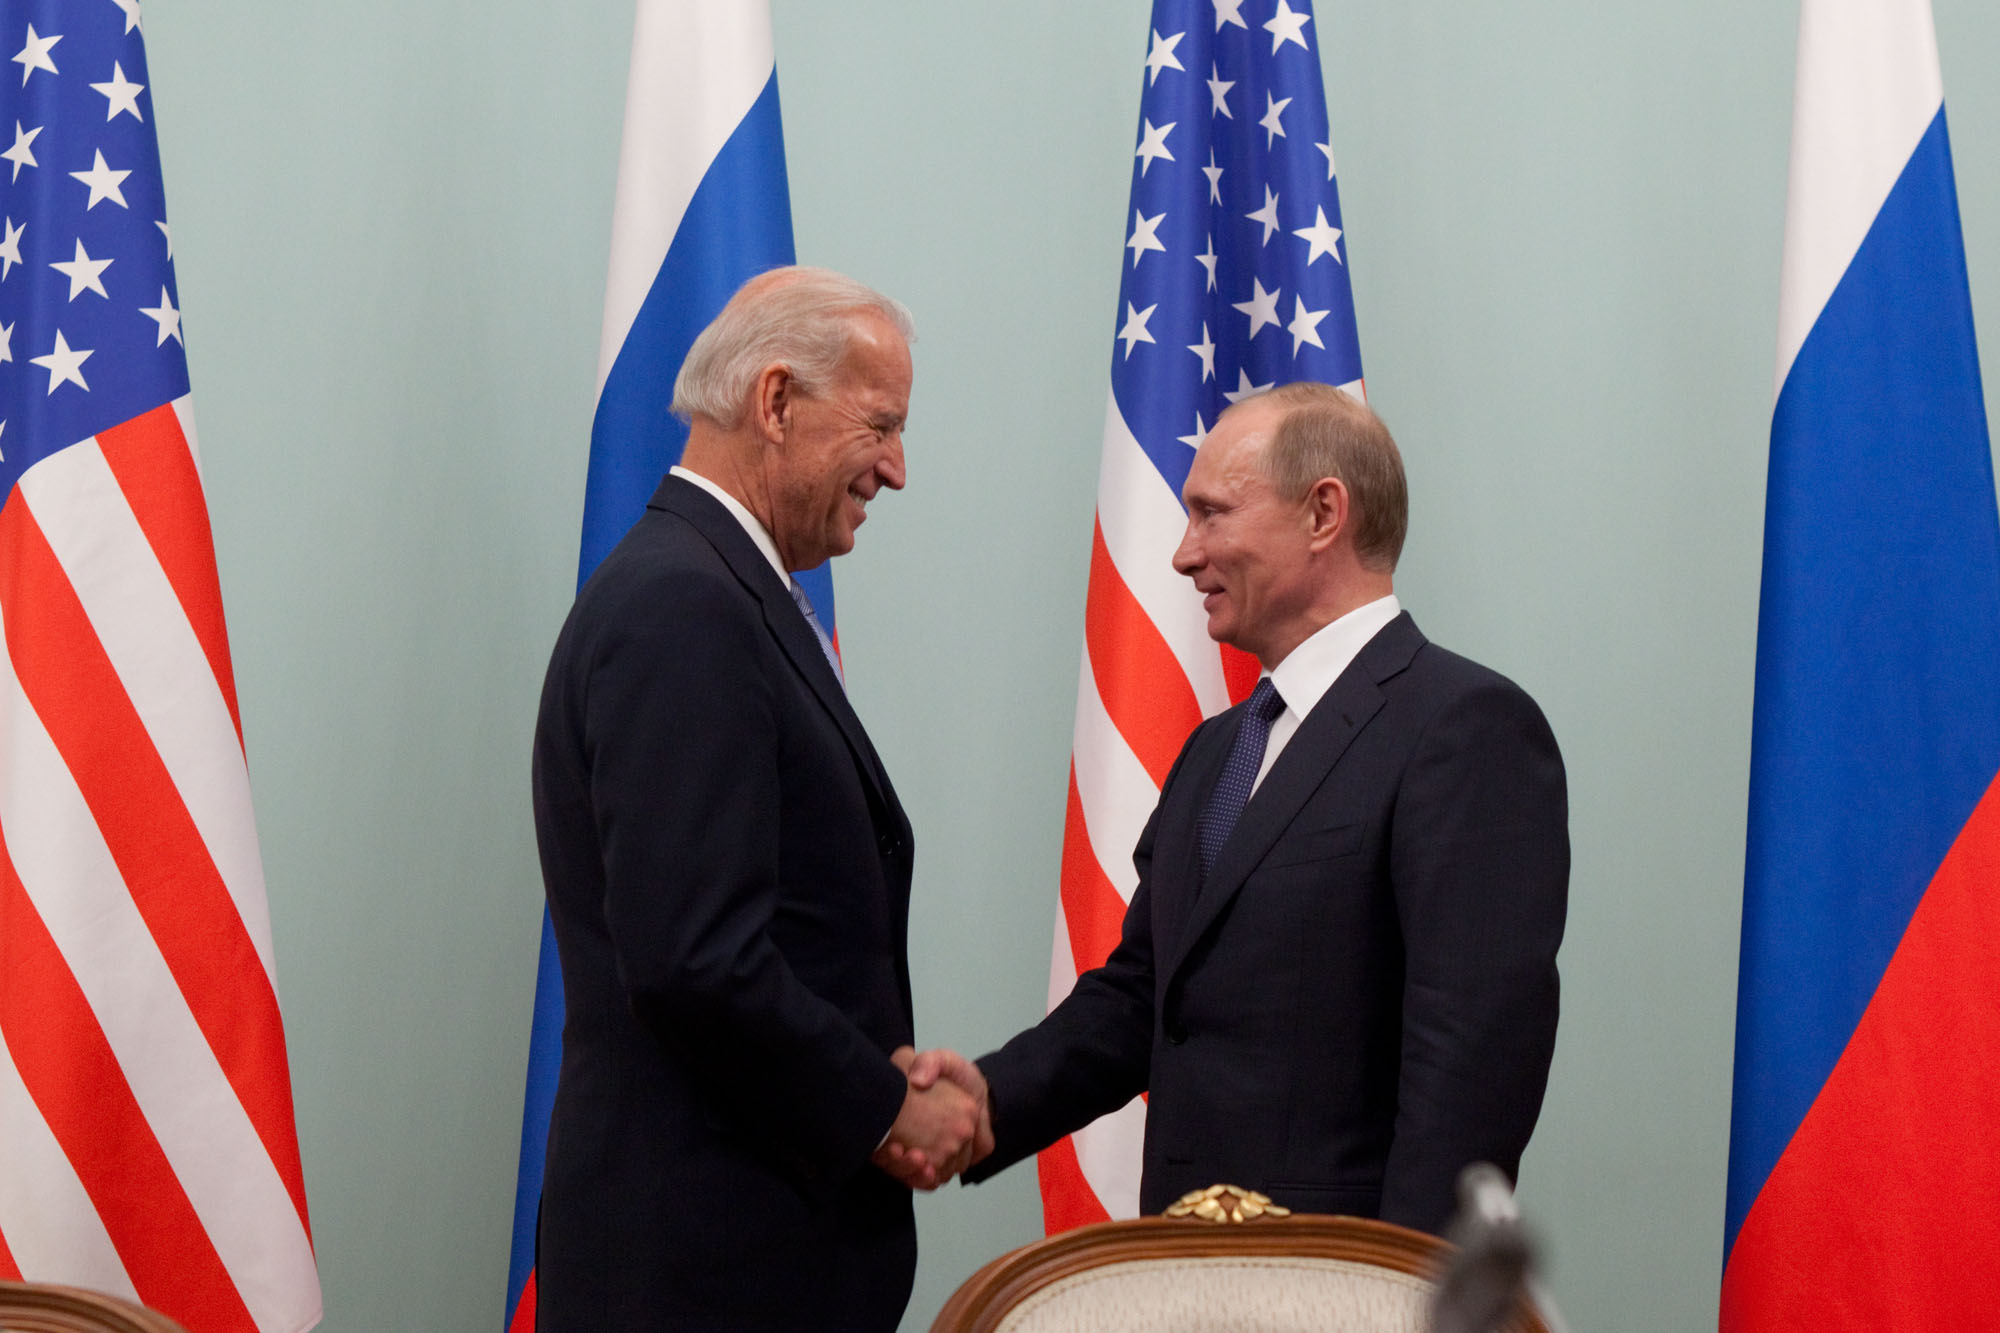 Vice President Joe Biden greets Russian Prime Minister Vladimir Putin at the Russian White House